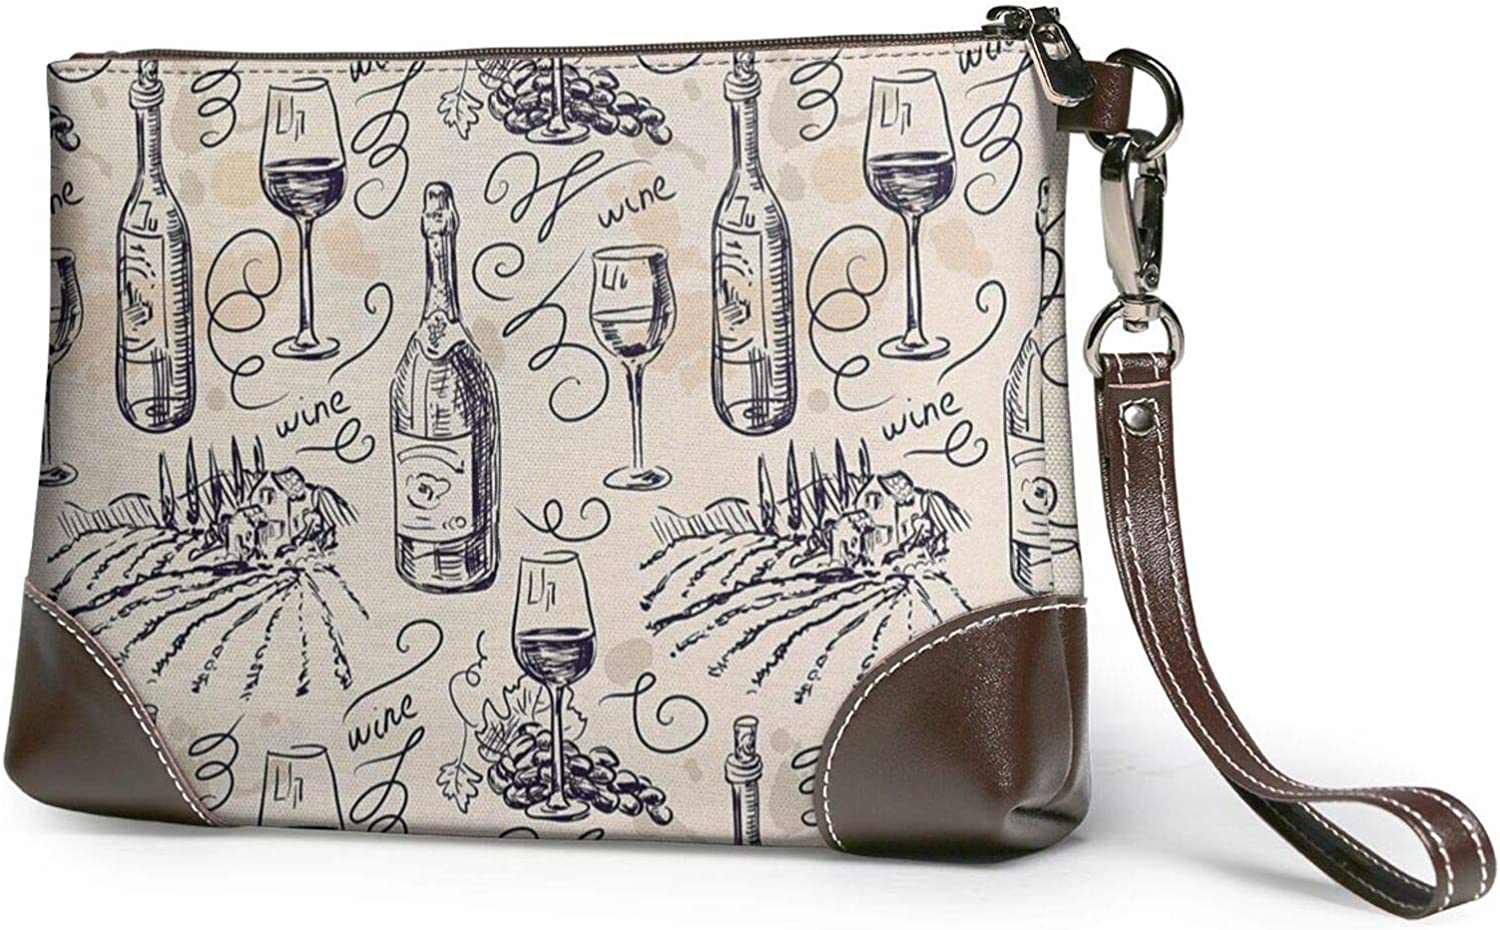 Wine And Winemaking Winery Grape Field Printed Women'S Wristlet Handbags Purses Evening Leather Clutch Bags